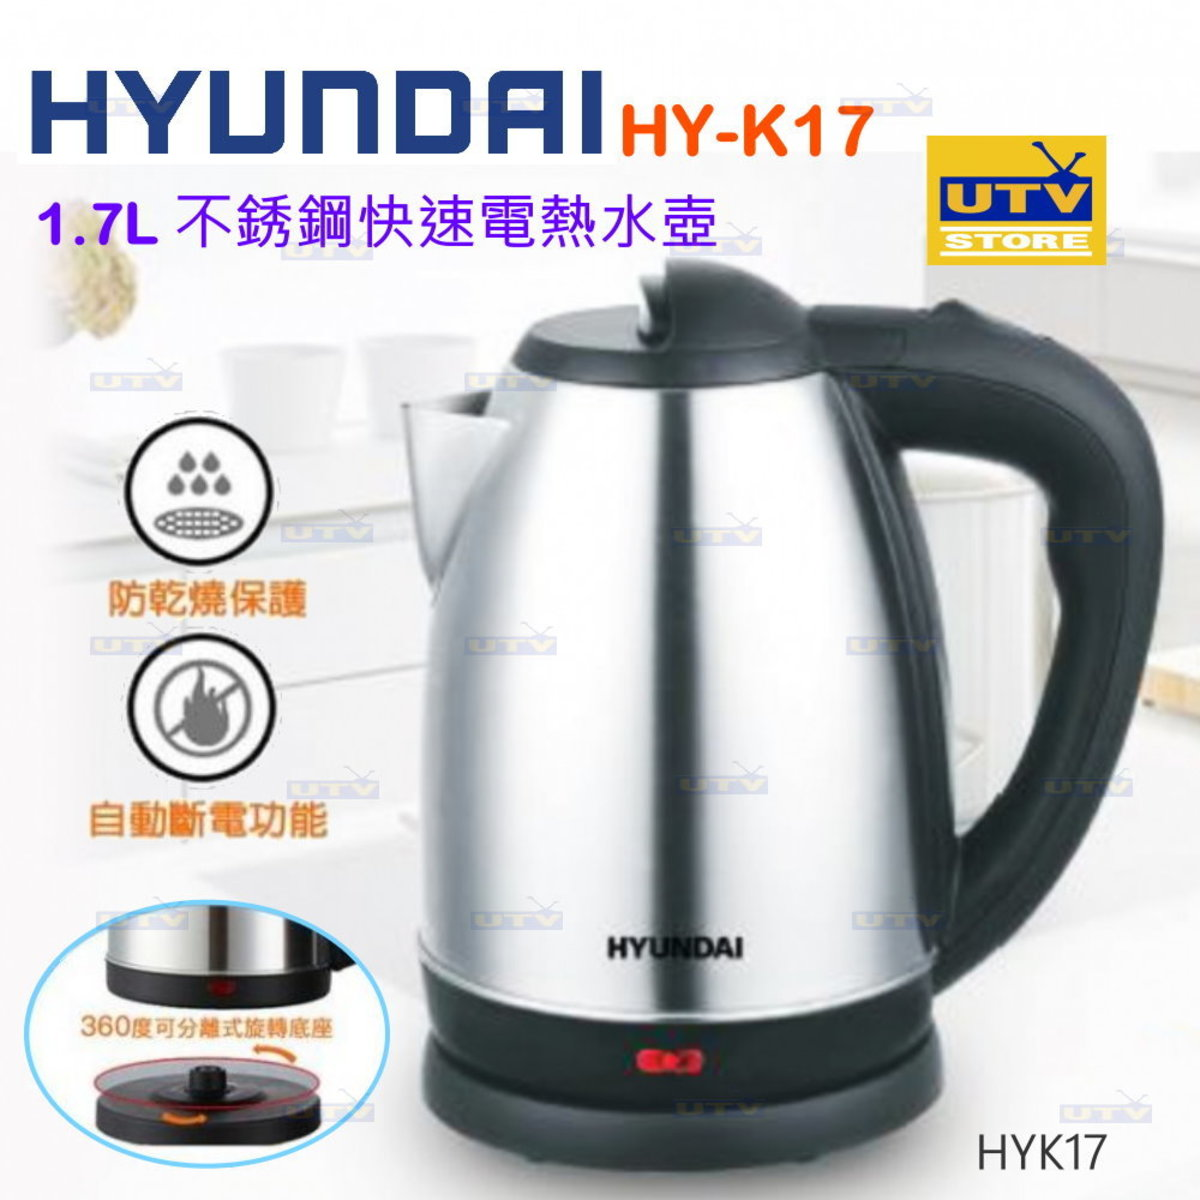 HY-K17 1.7L Electric Kettle